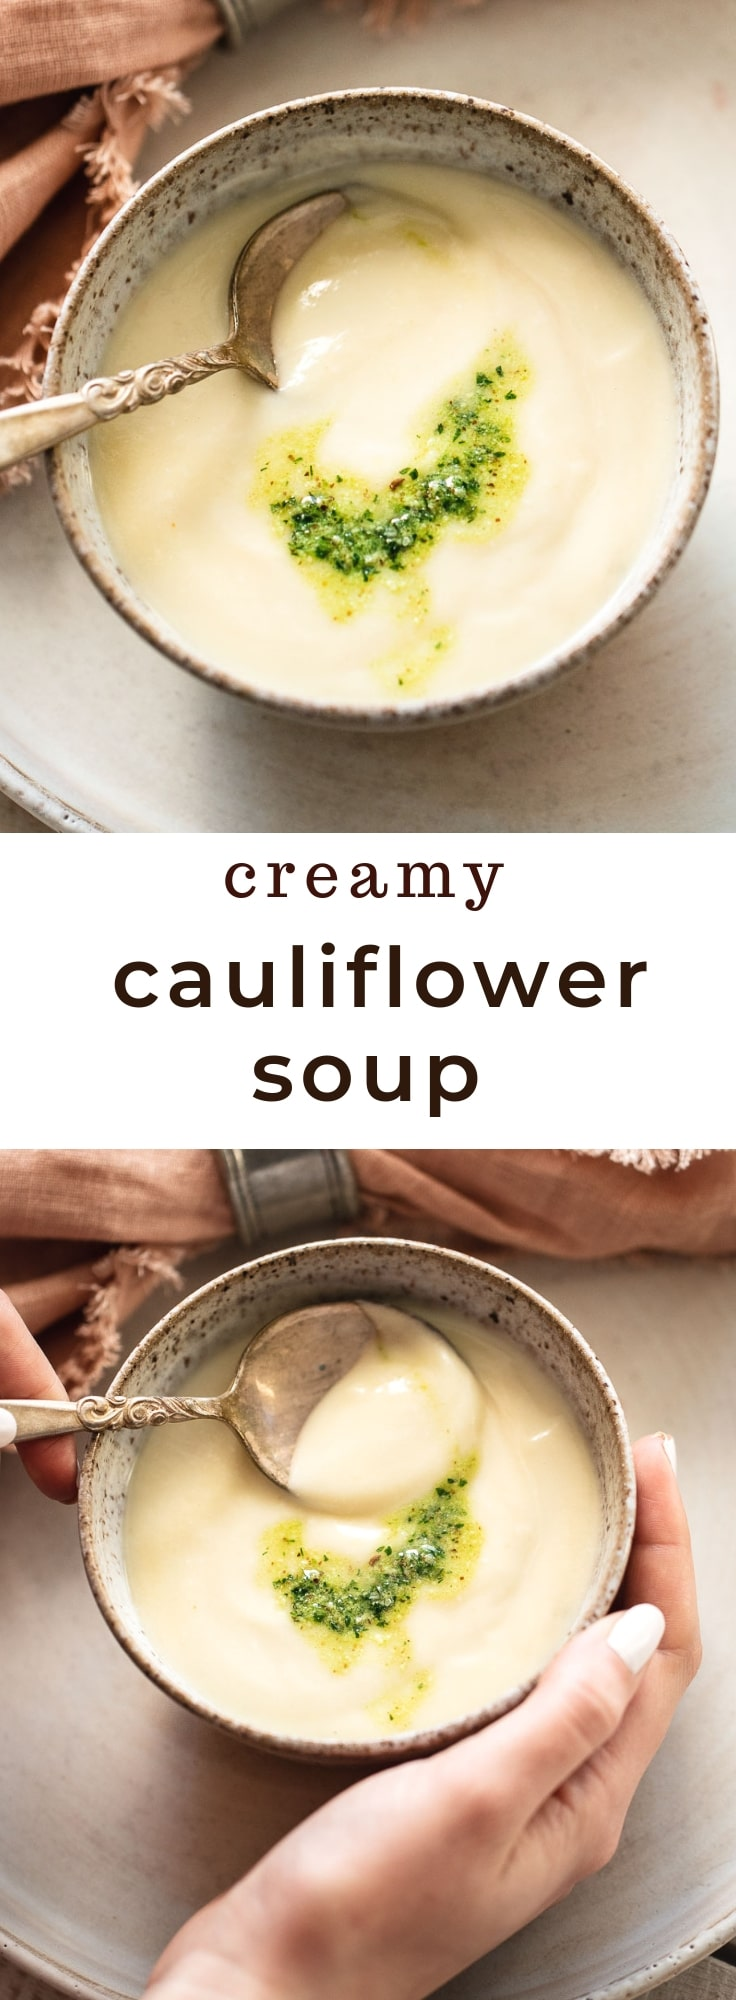 Easy Cream of Cauliflower Soup with Parmesan (Keto-Low Carb)